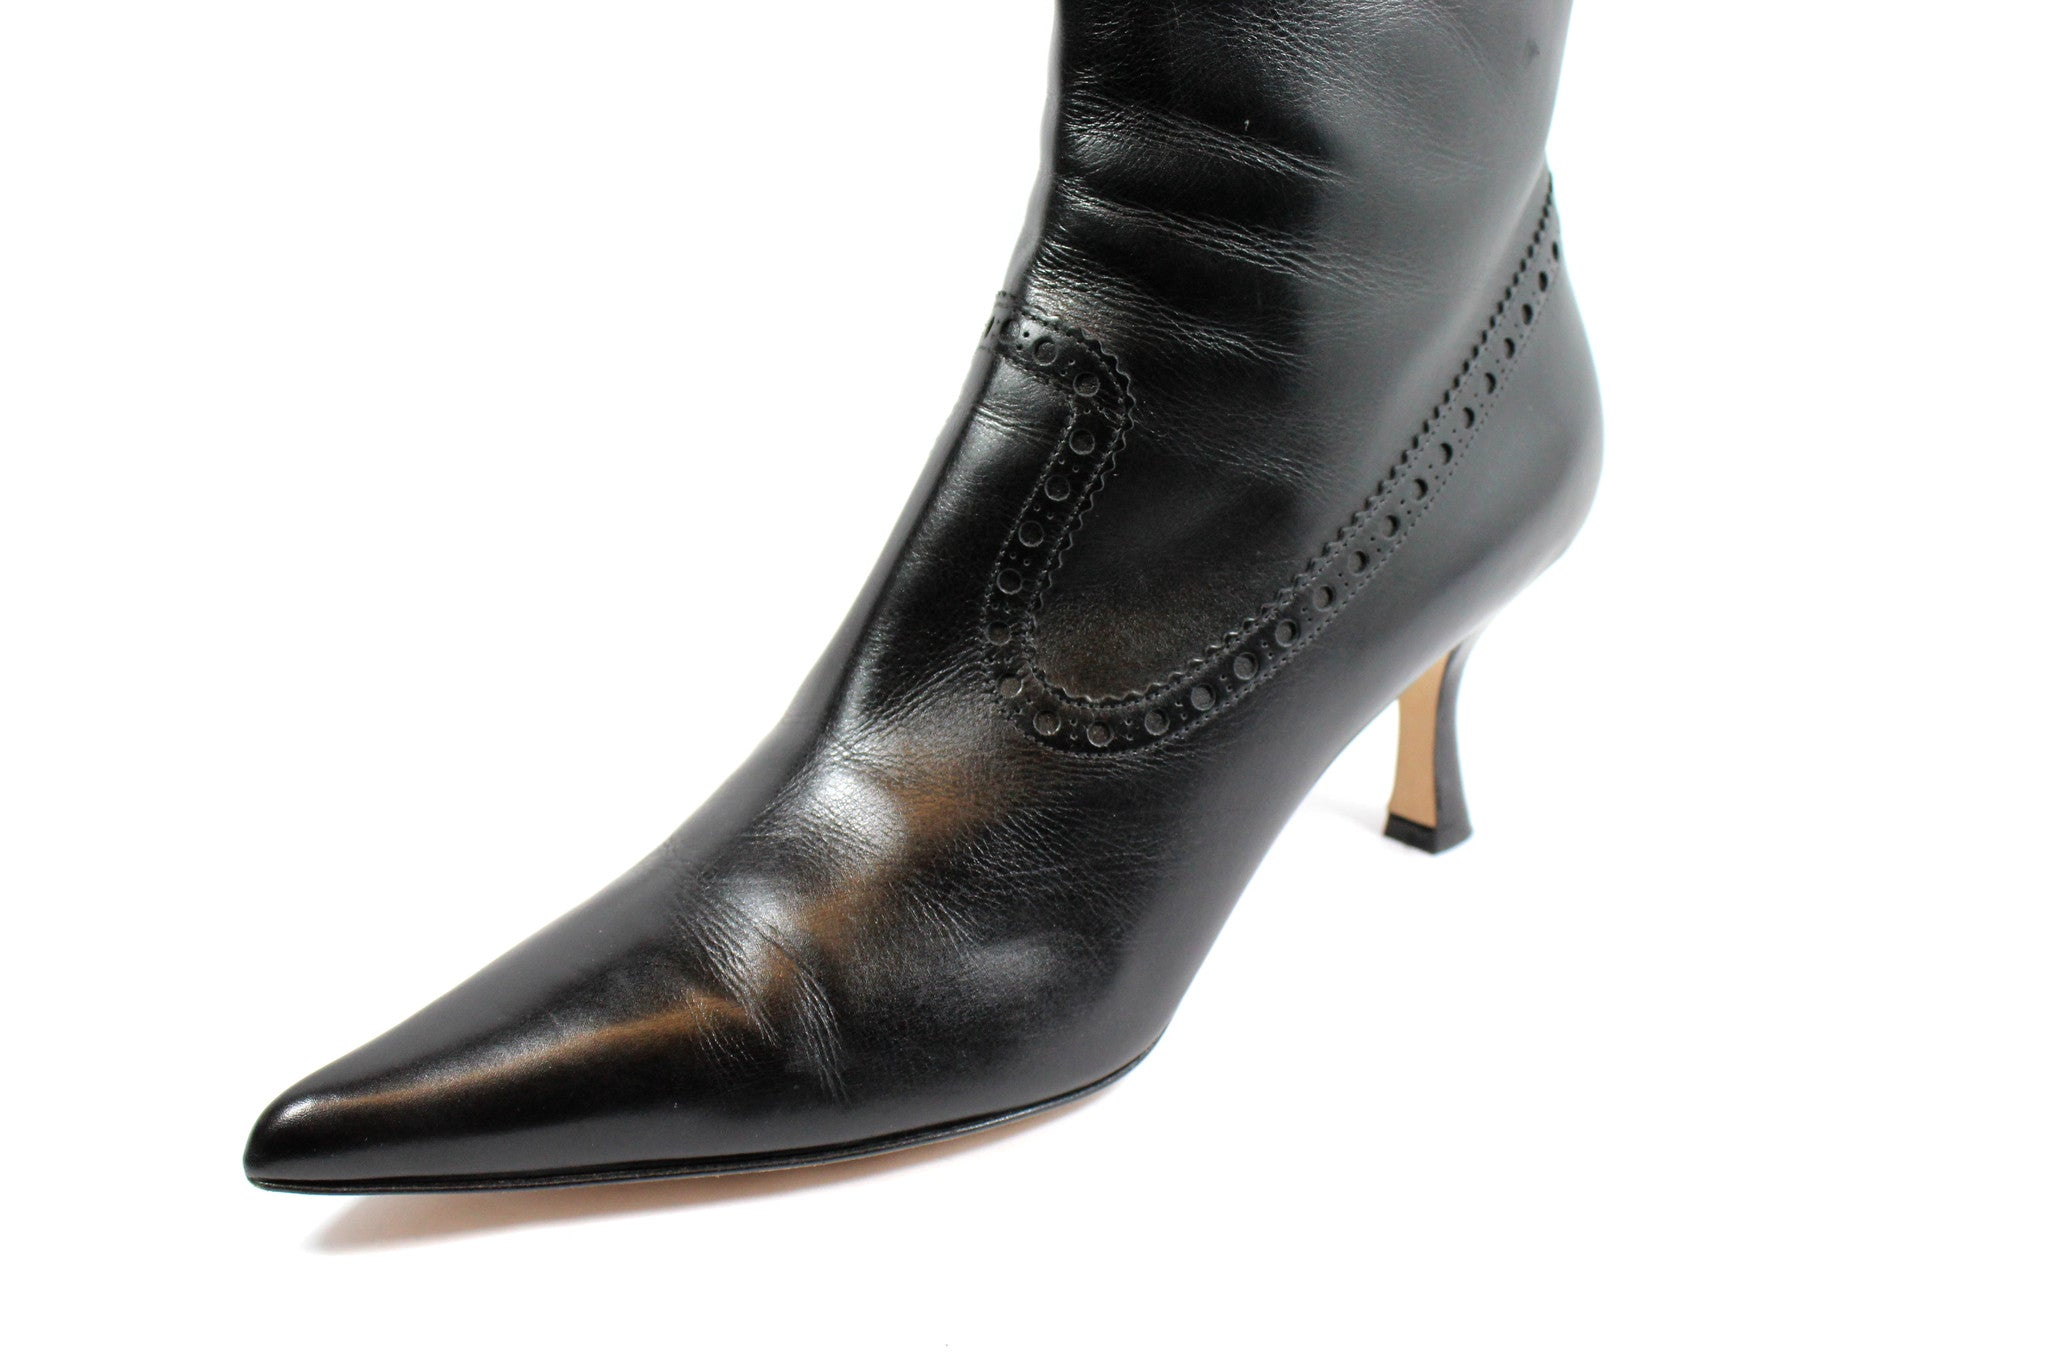 Michael Kors Perforated Leather Ankle Boots (Size 11) - Encore Consignment - 8